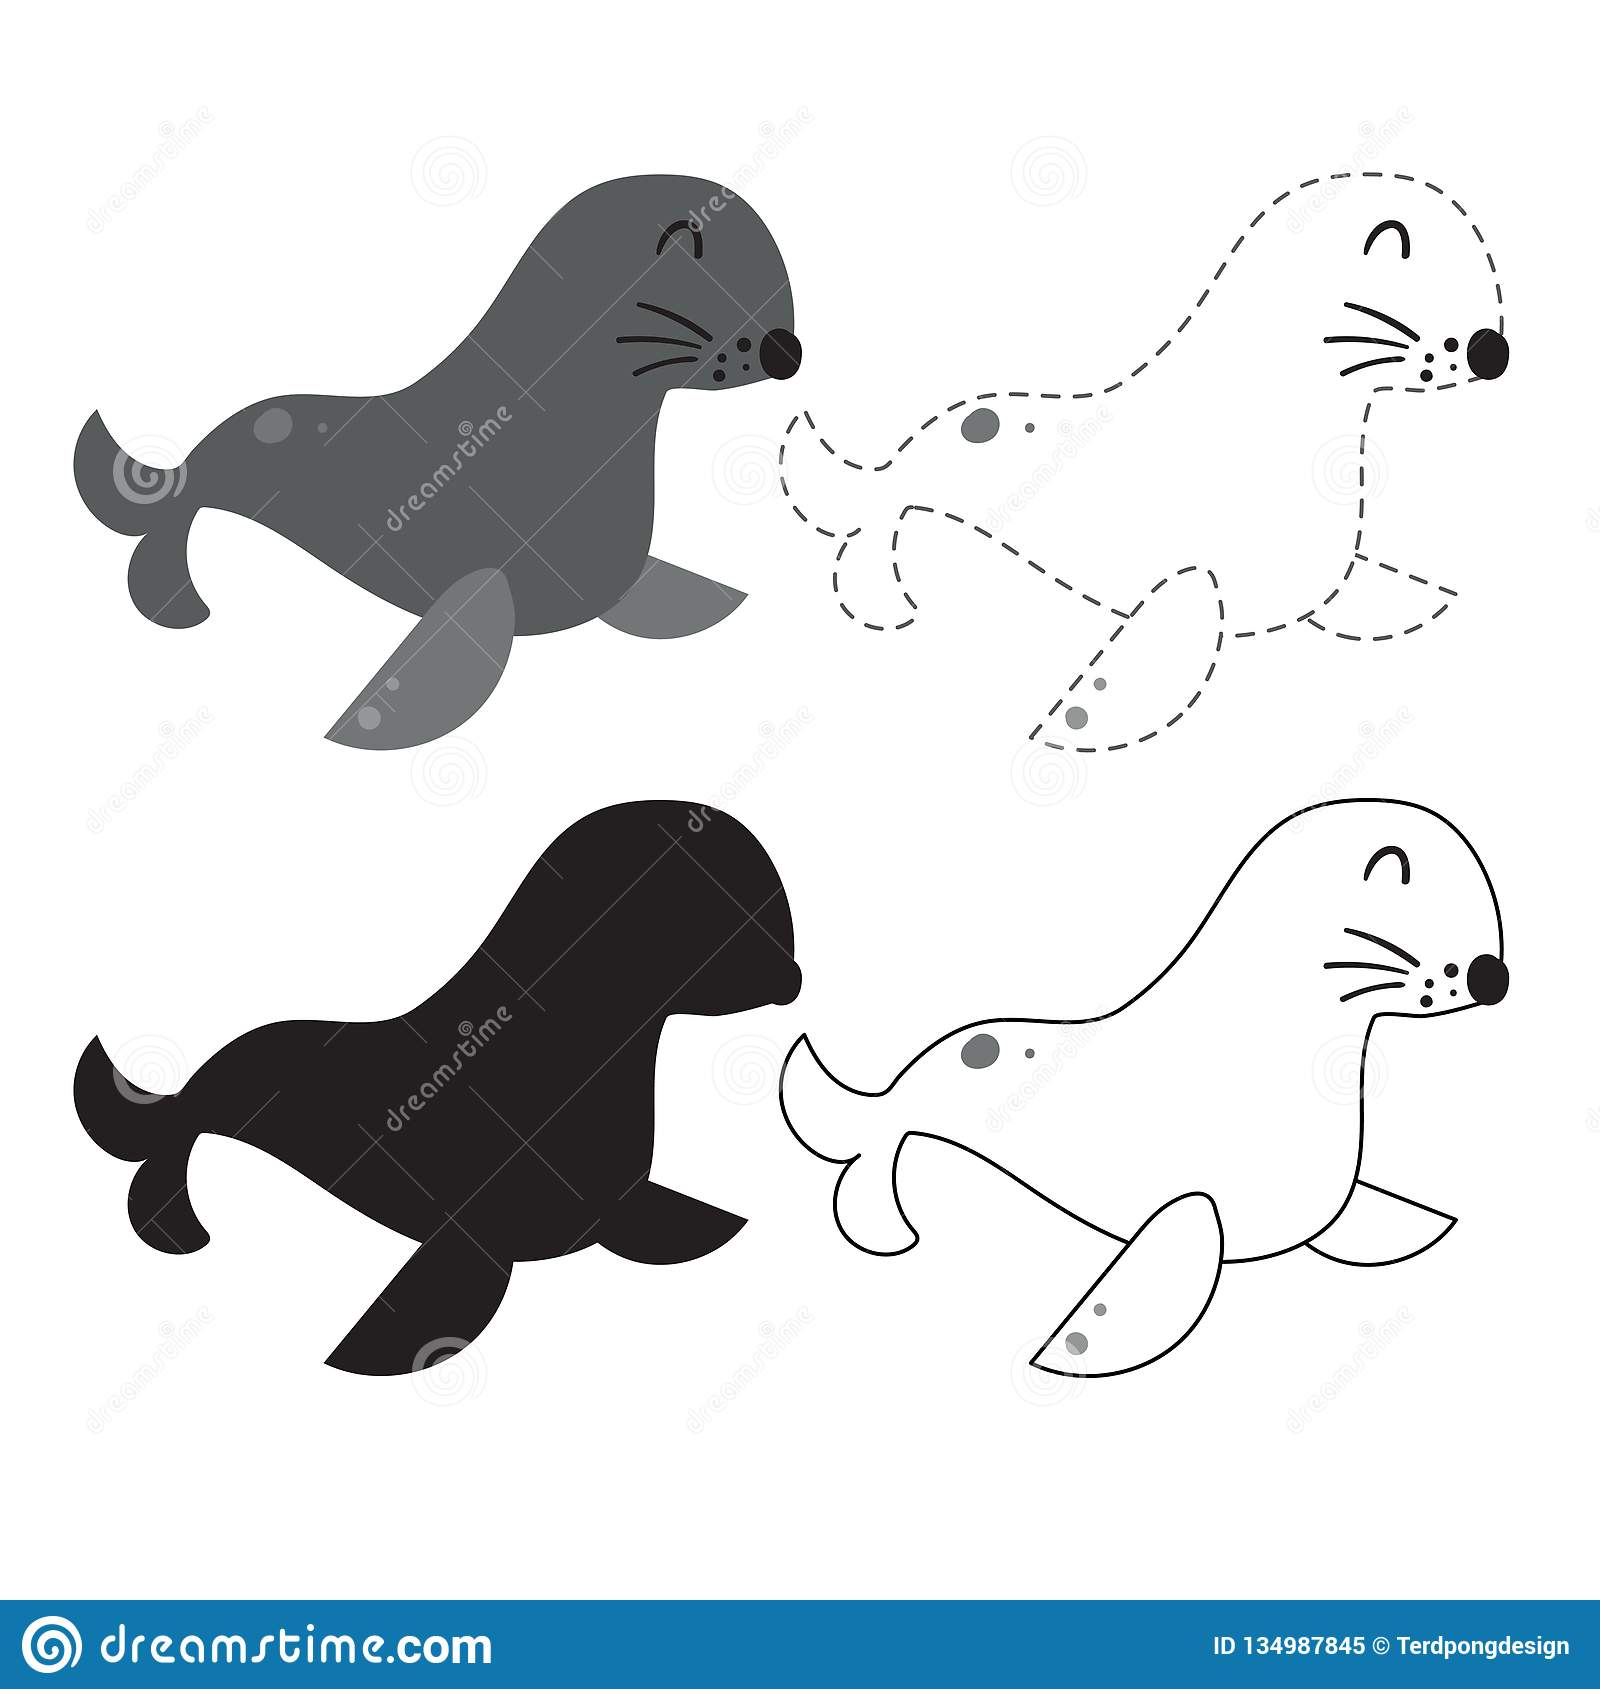 Sealion Worksheet Vector Design Stock Vector